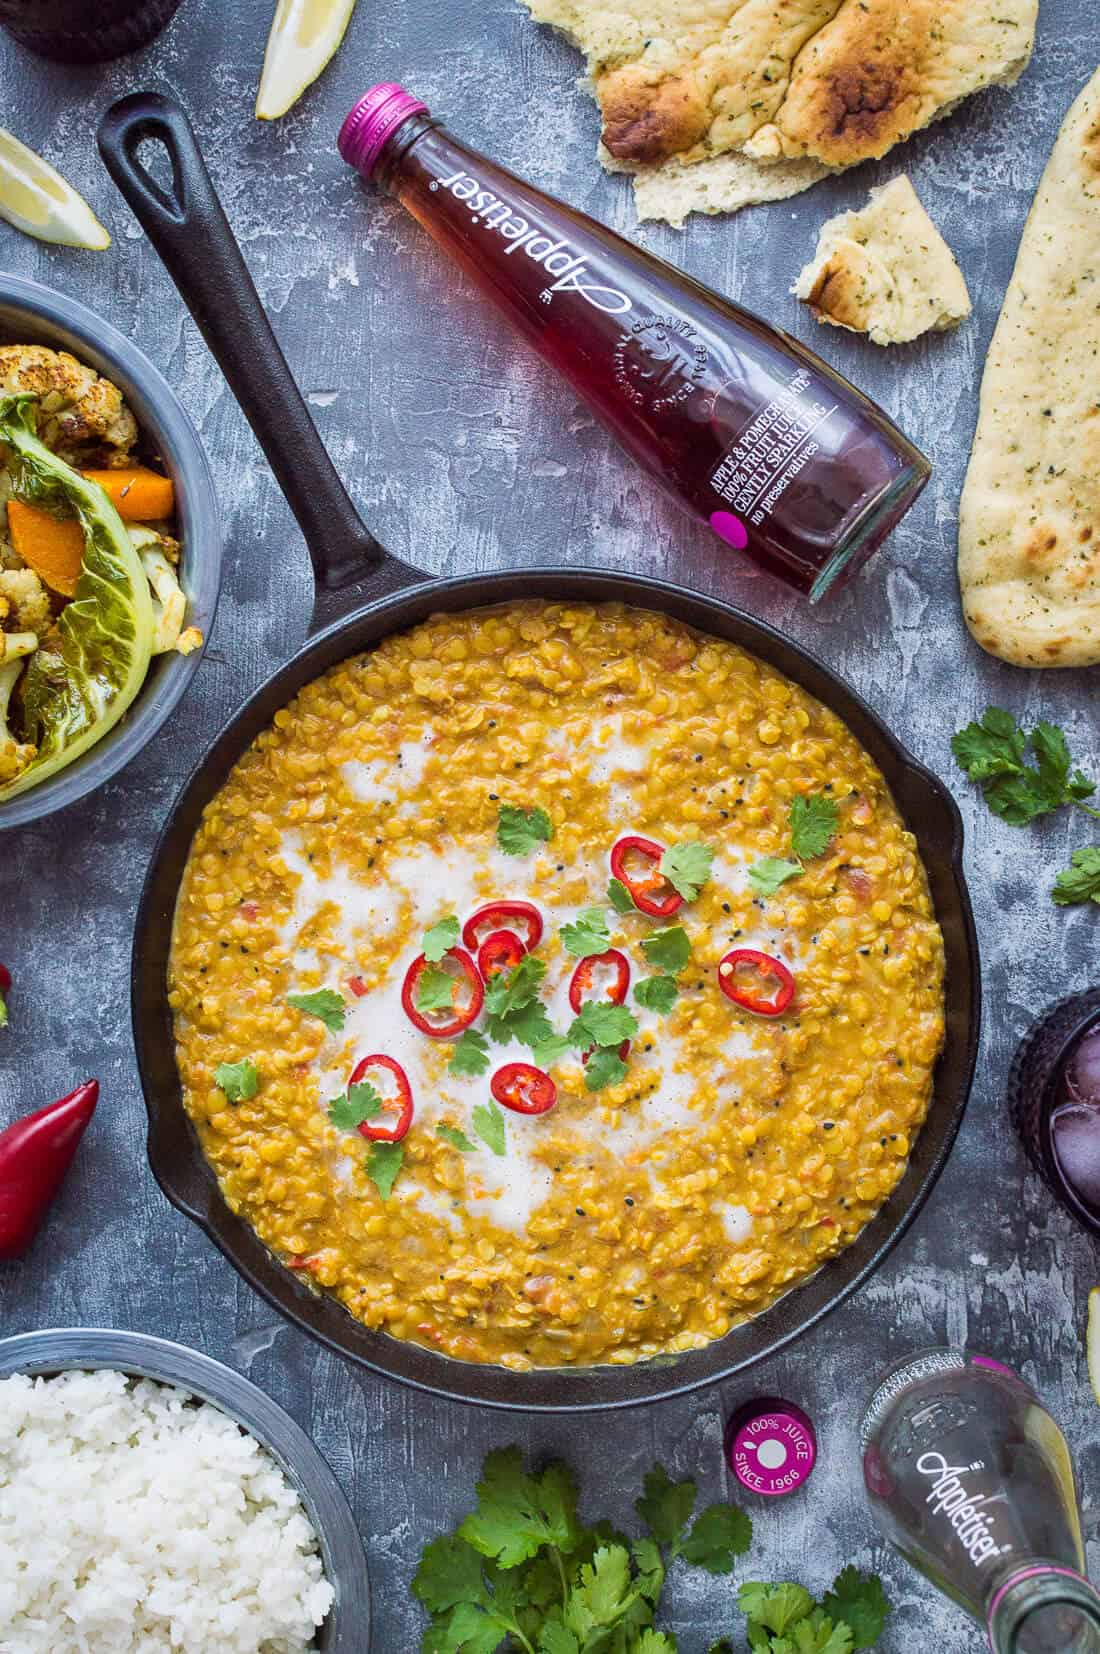 A pan of vegan red lentil dhal topped with red chilli, coriander and coconut milk with a bottle of Appletiser